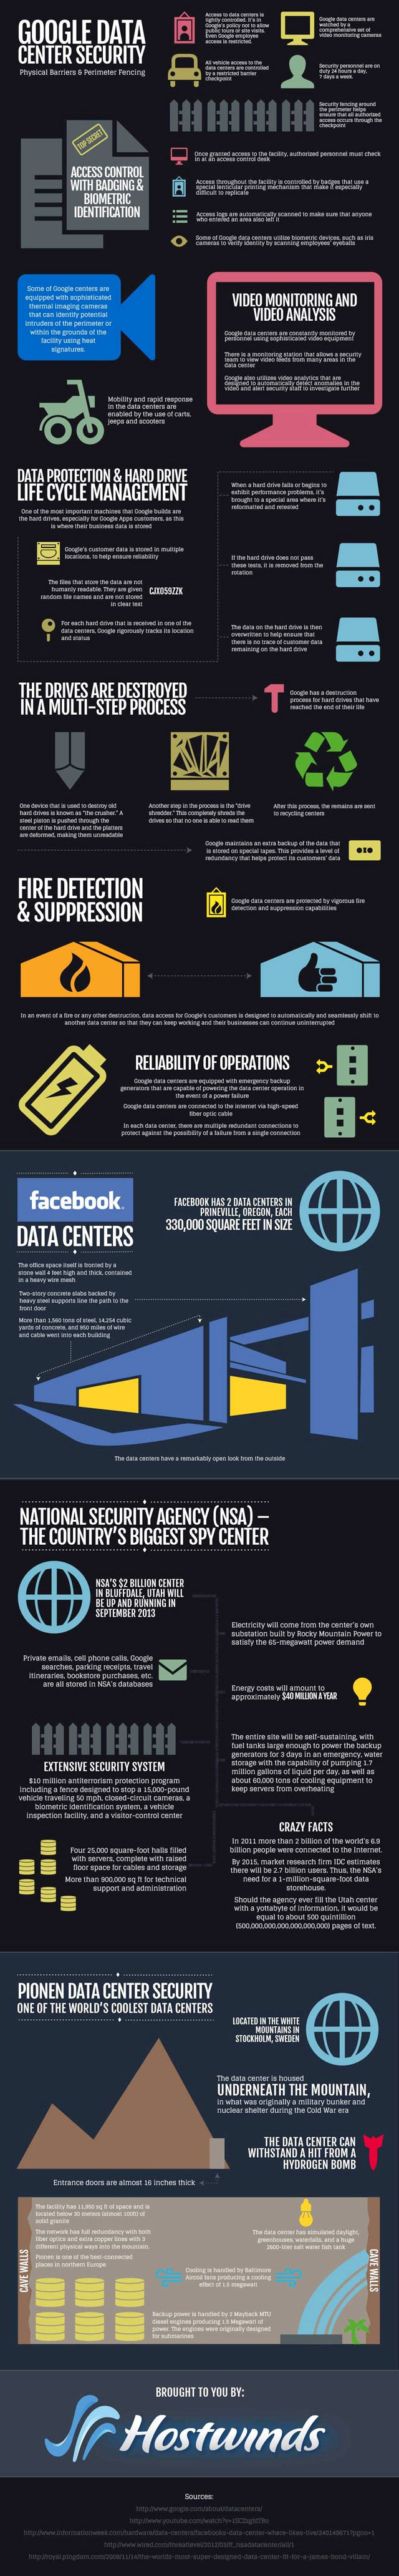 How Secure Is Your Personal Data (bottom)